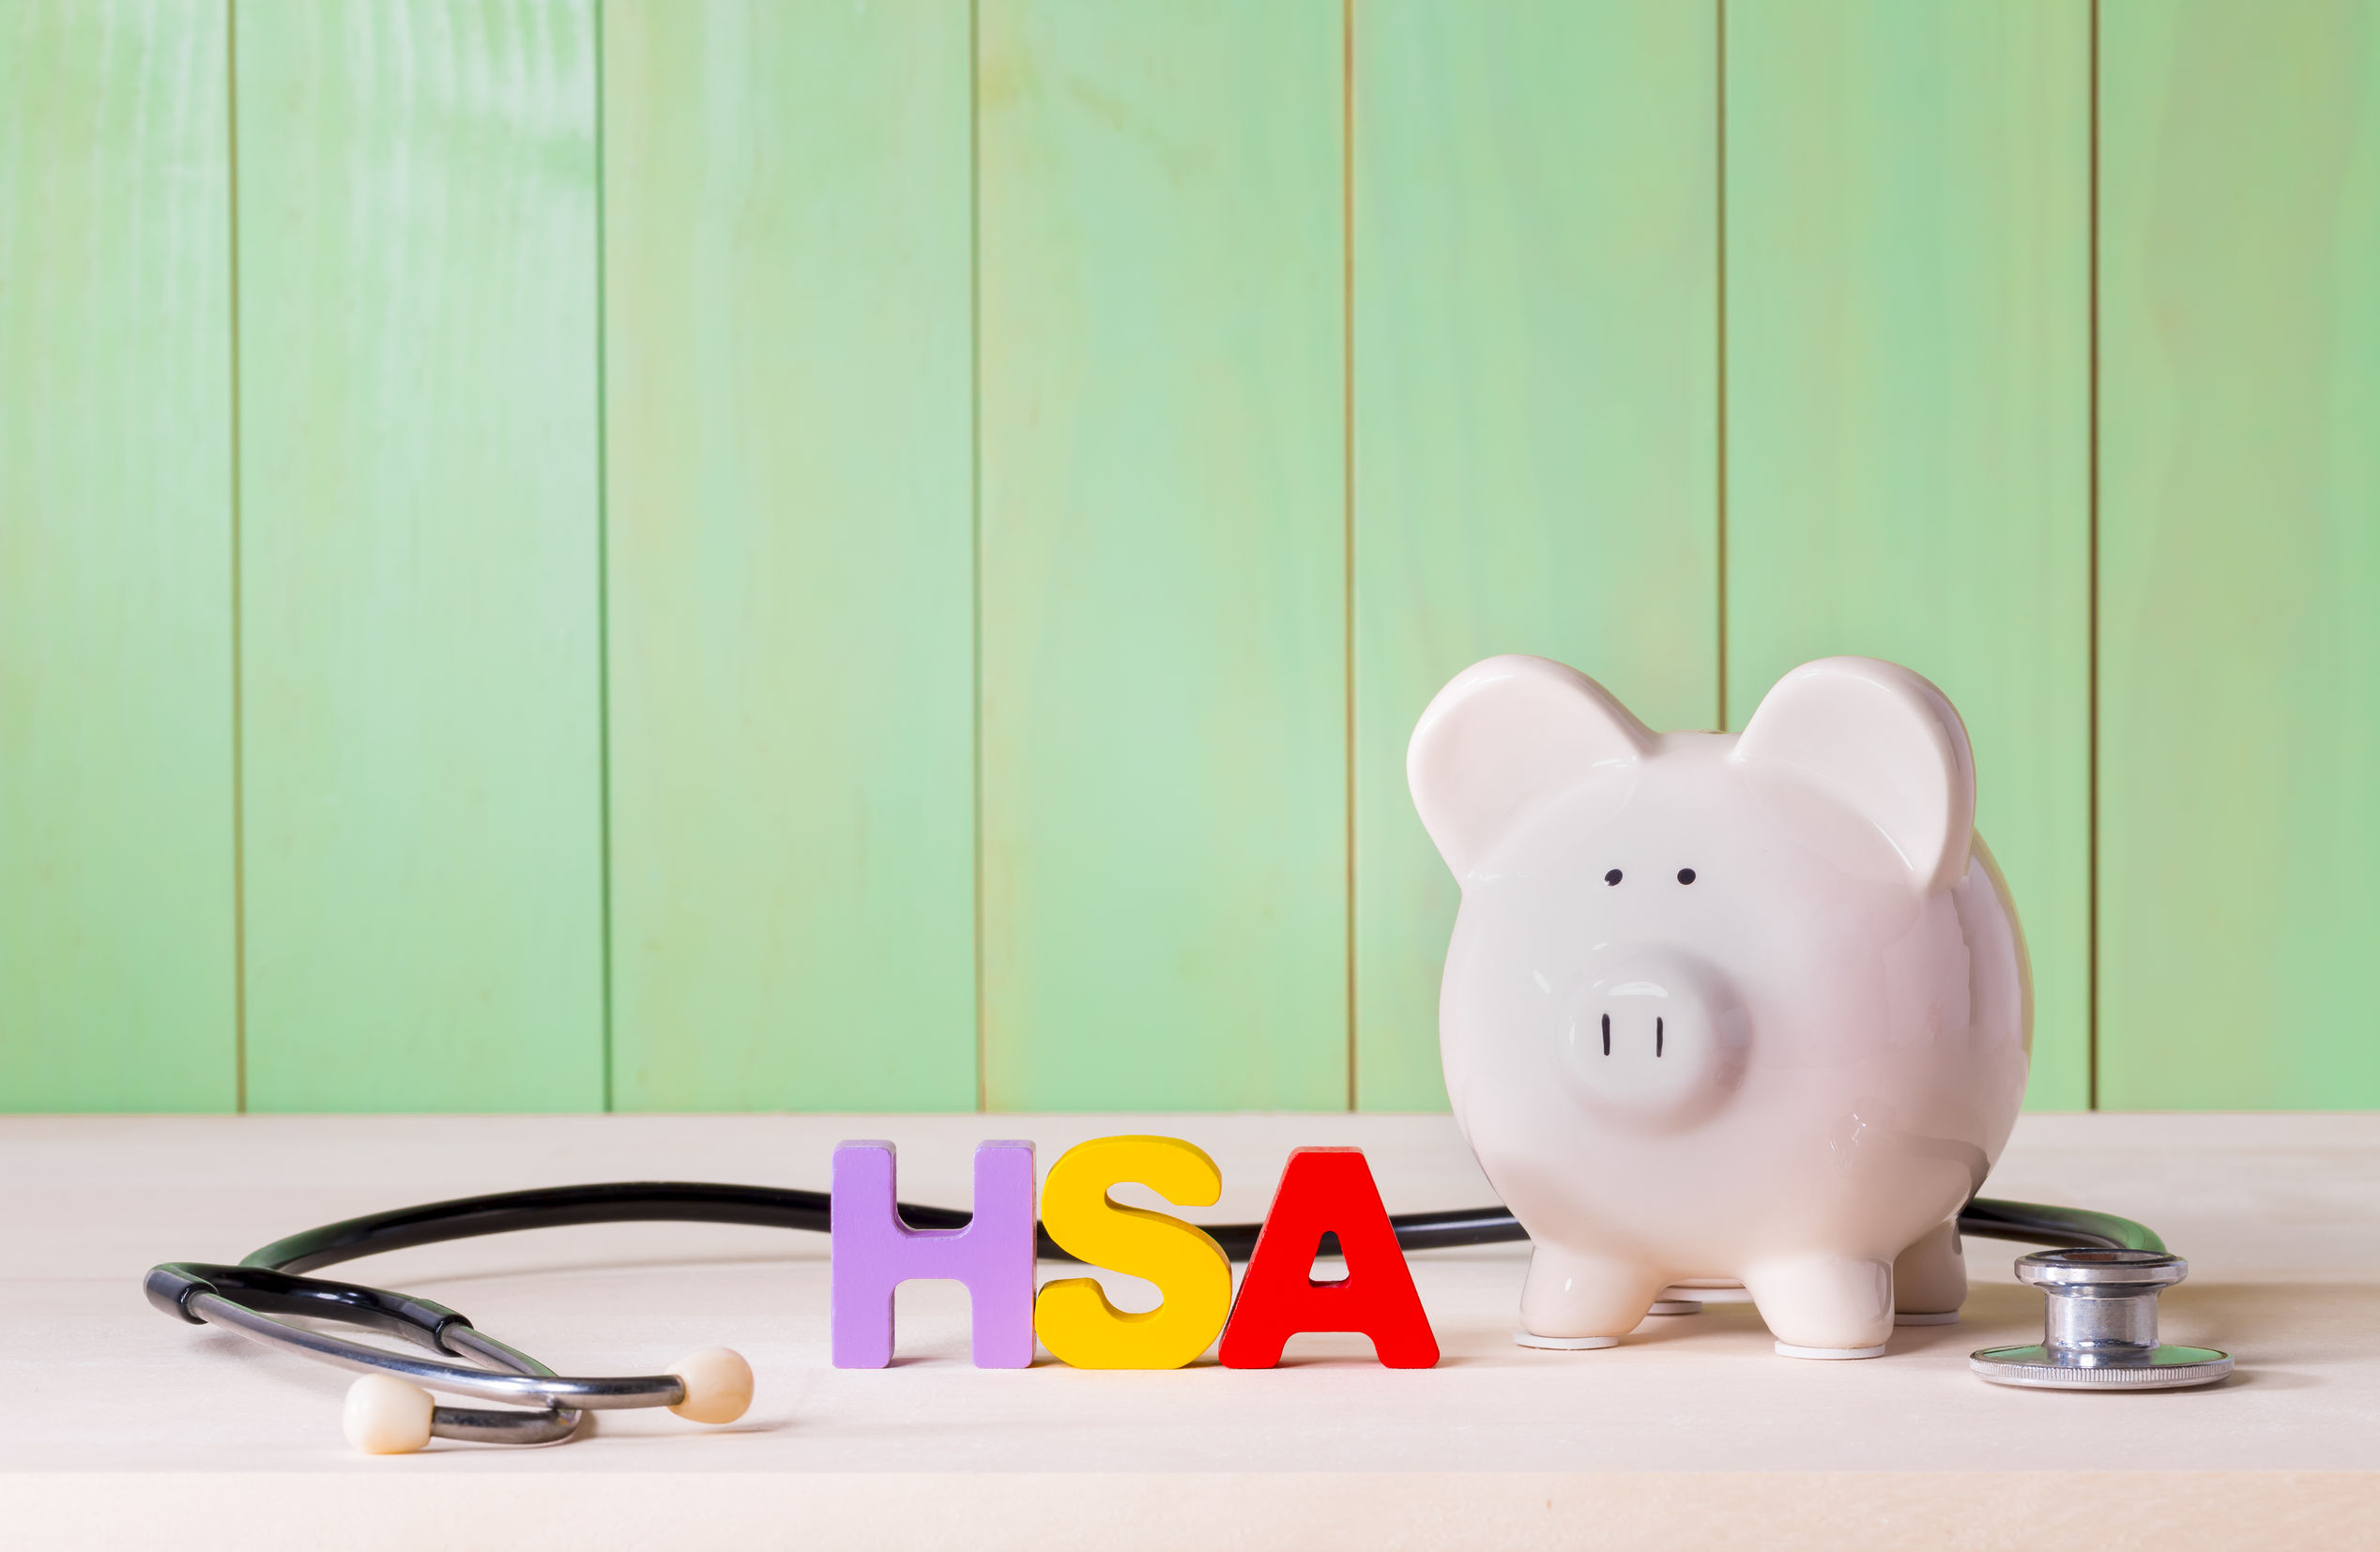 HSAs have steadily risen in popularity over the past decade. Learn what qualifies you to be eligible for an HSA, and whether or not they're right for you.